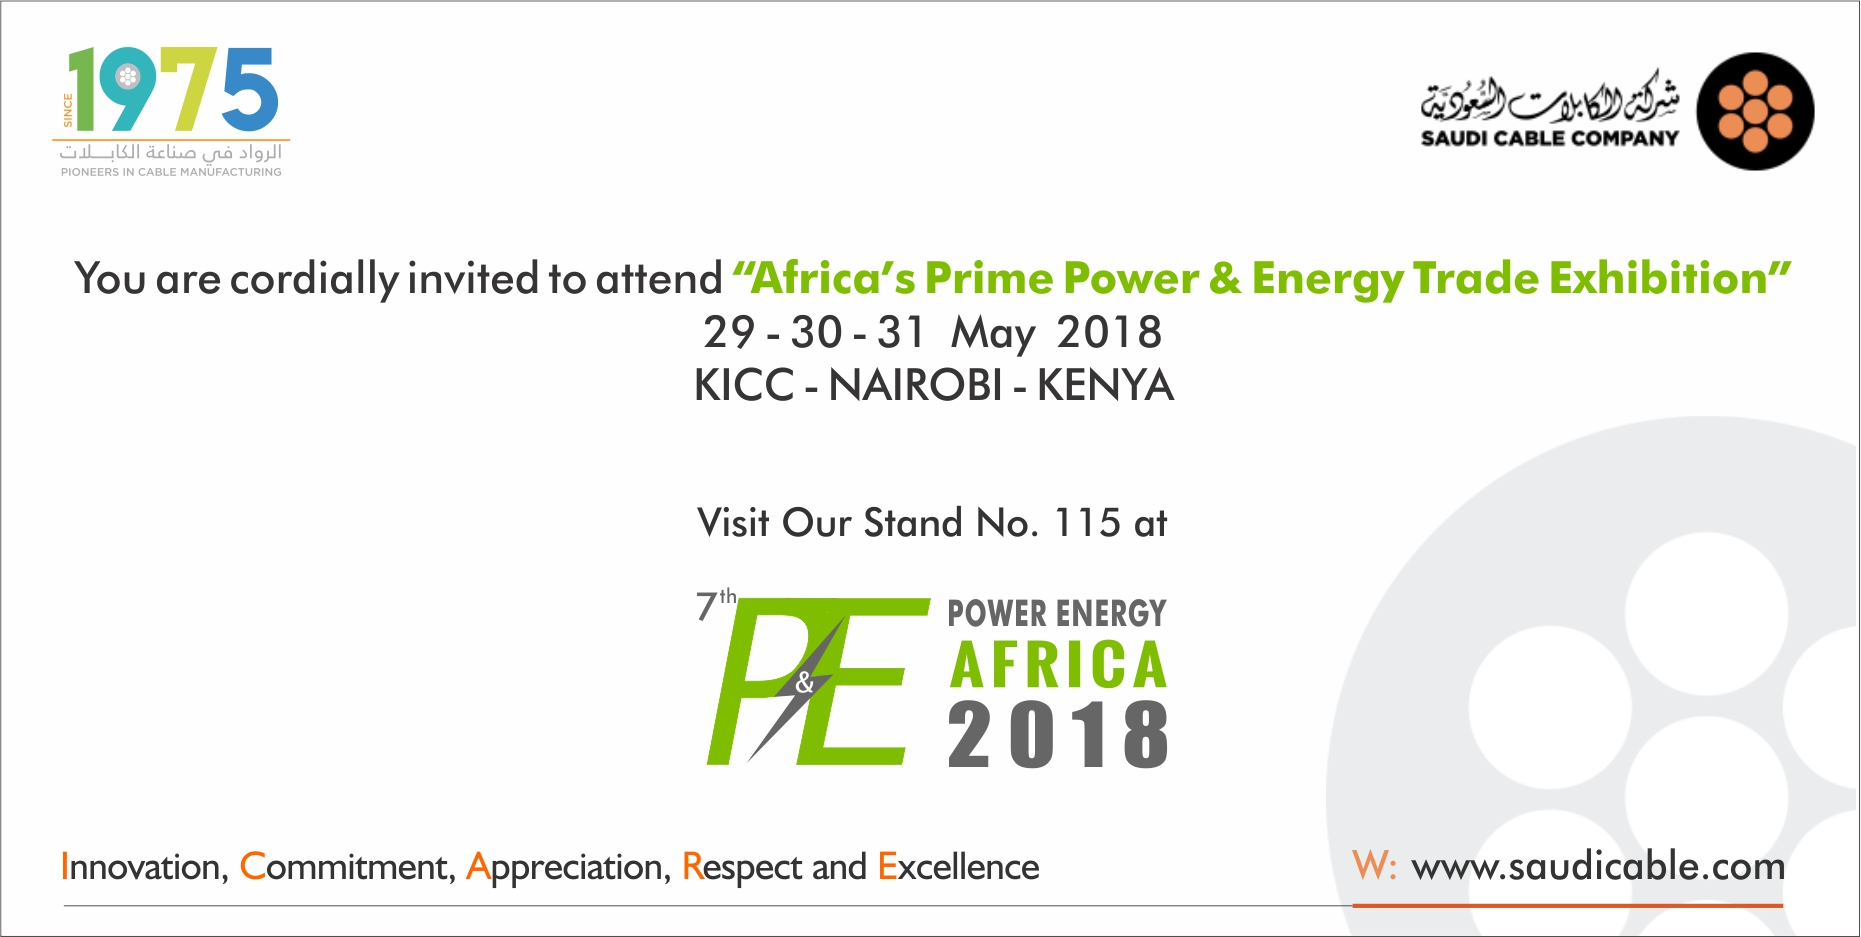 PLEASE ACCEPT OUR CORDIAL INVITATION TO P&E AFRICA 2018